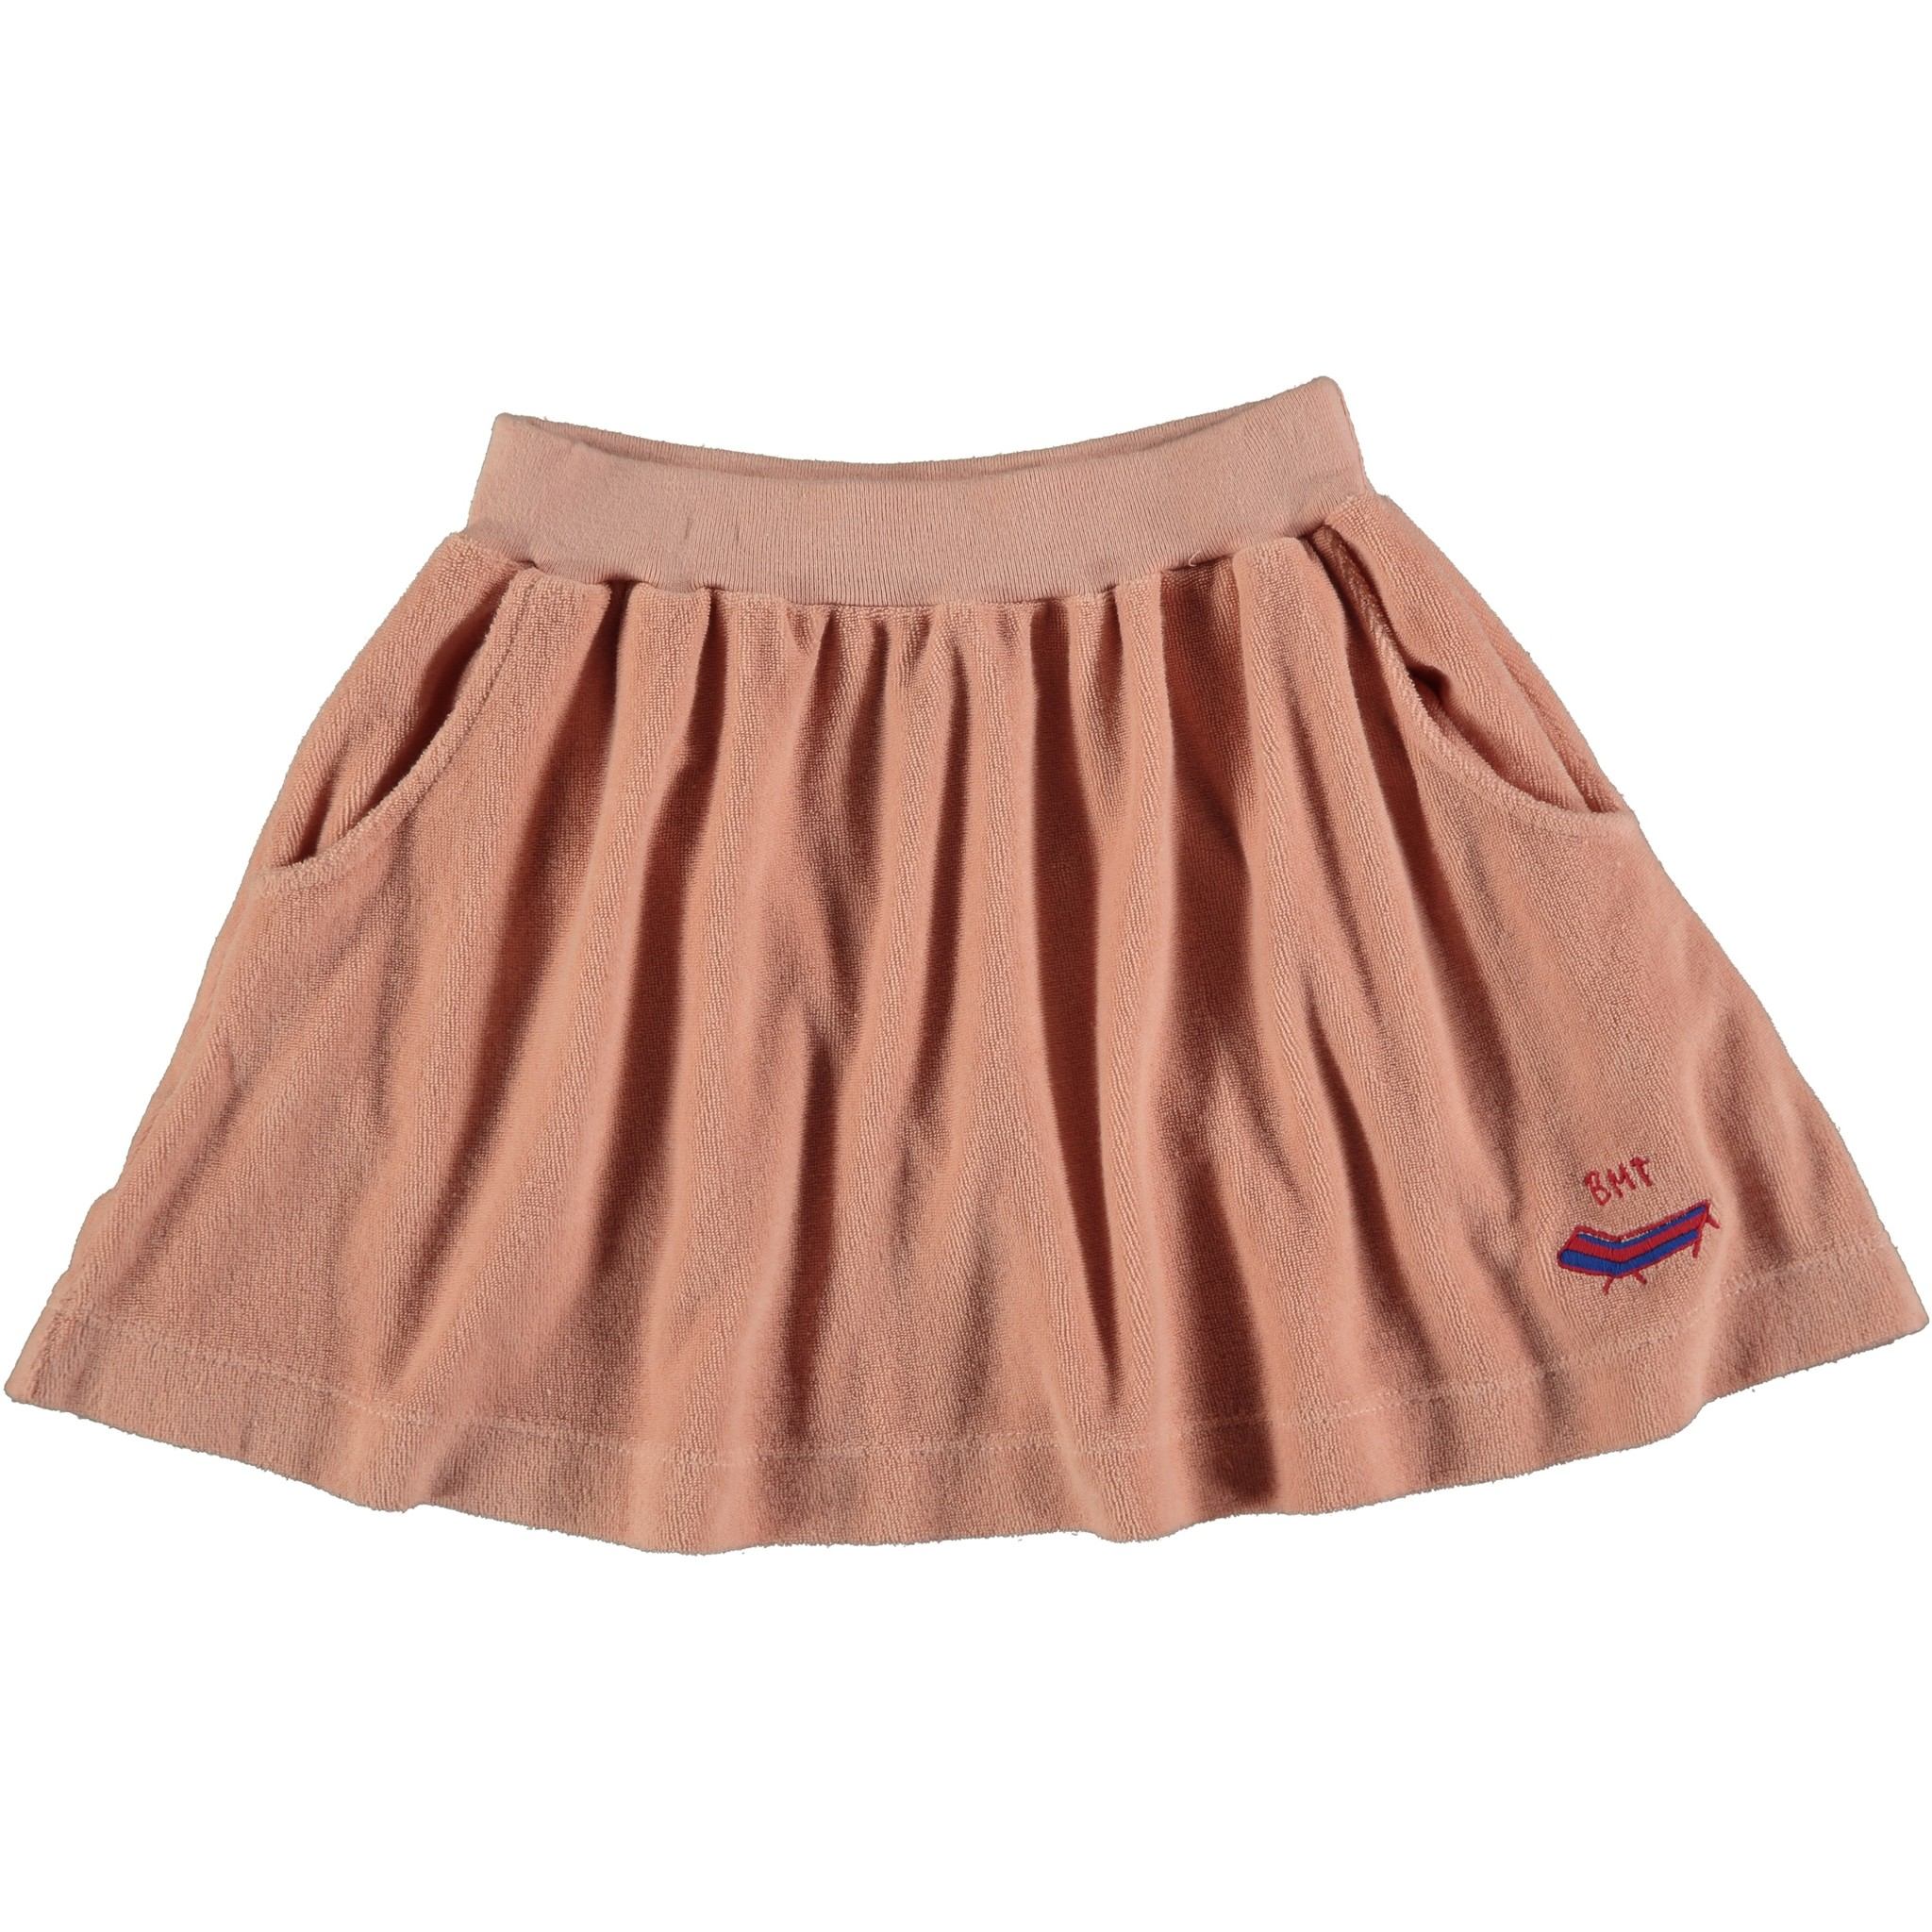 Skirt terry sun bed bmt-1